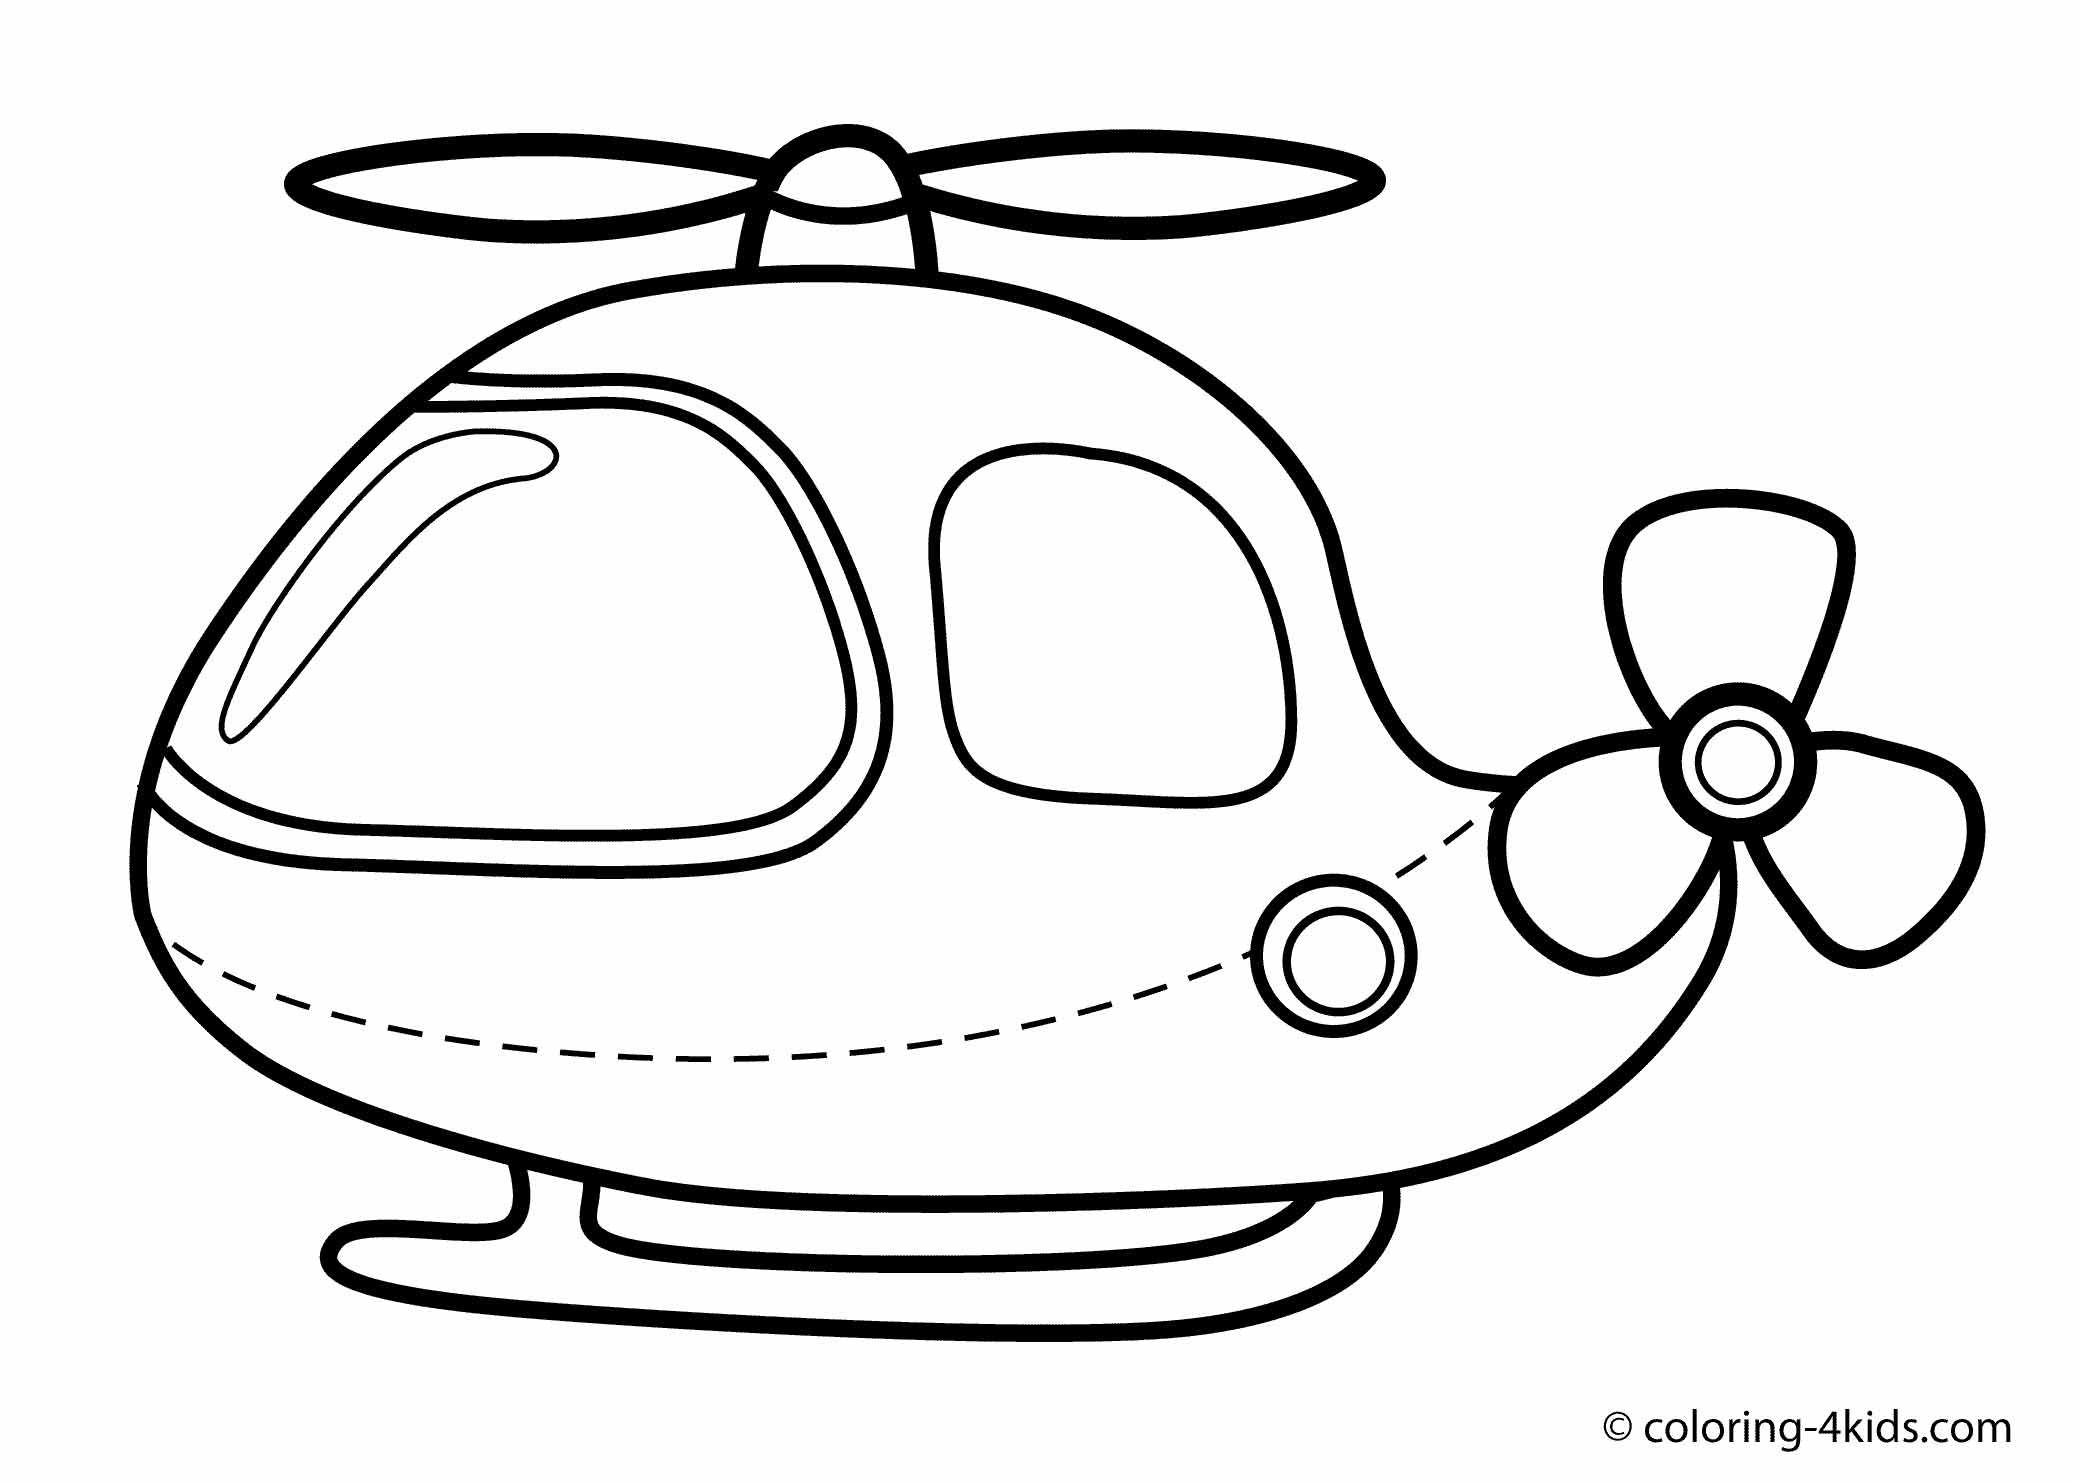 Helicopter Coloring Pages Helicopter Coloring Book For Kids Printable Free Airplane Coloring Pages Coloring Pages For Kids Dog Coloring Page